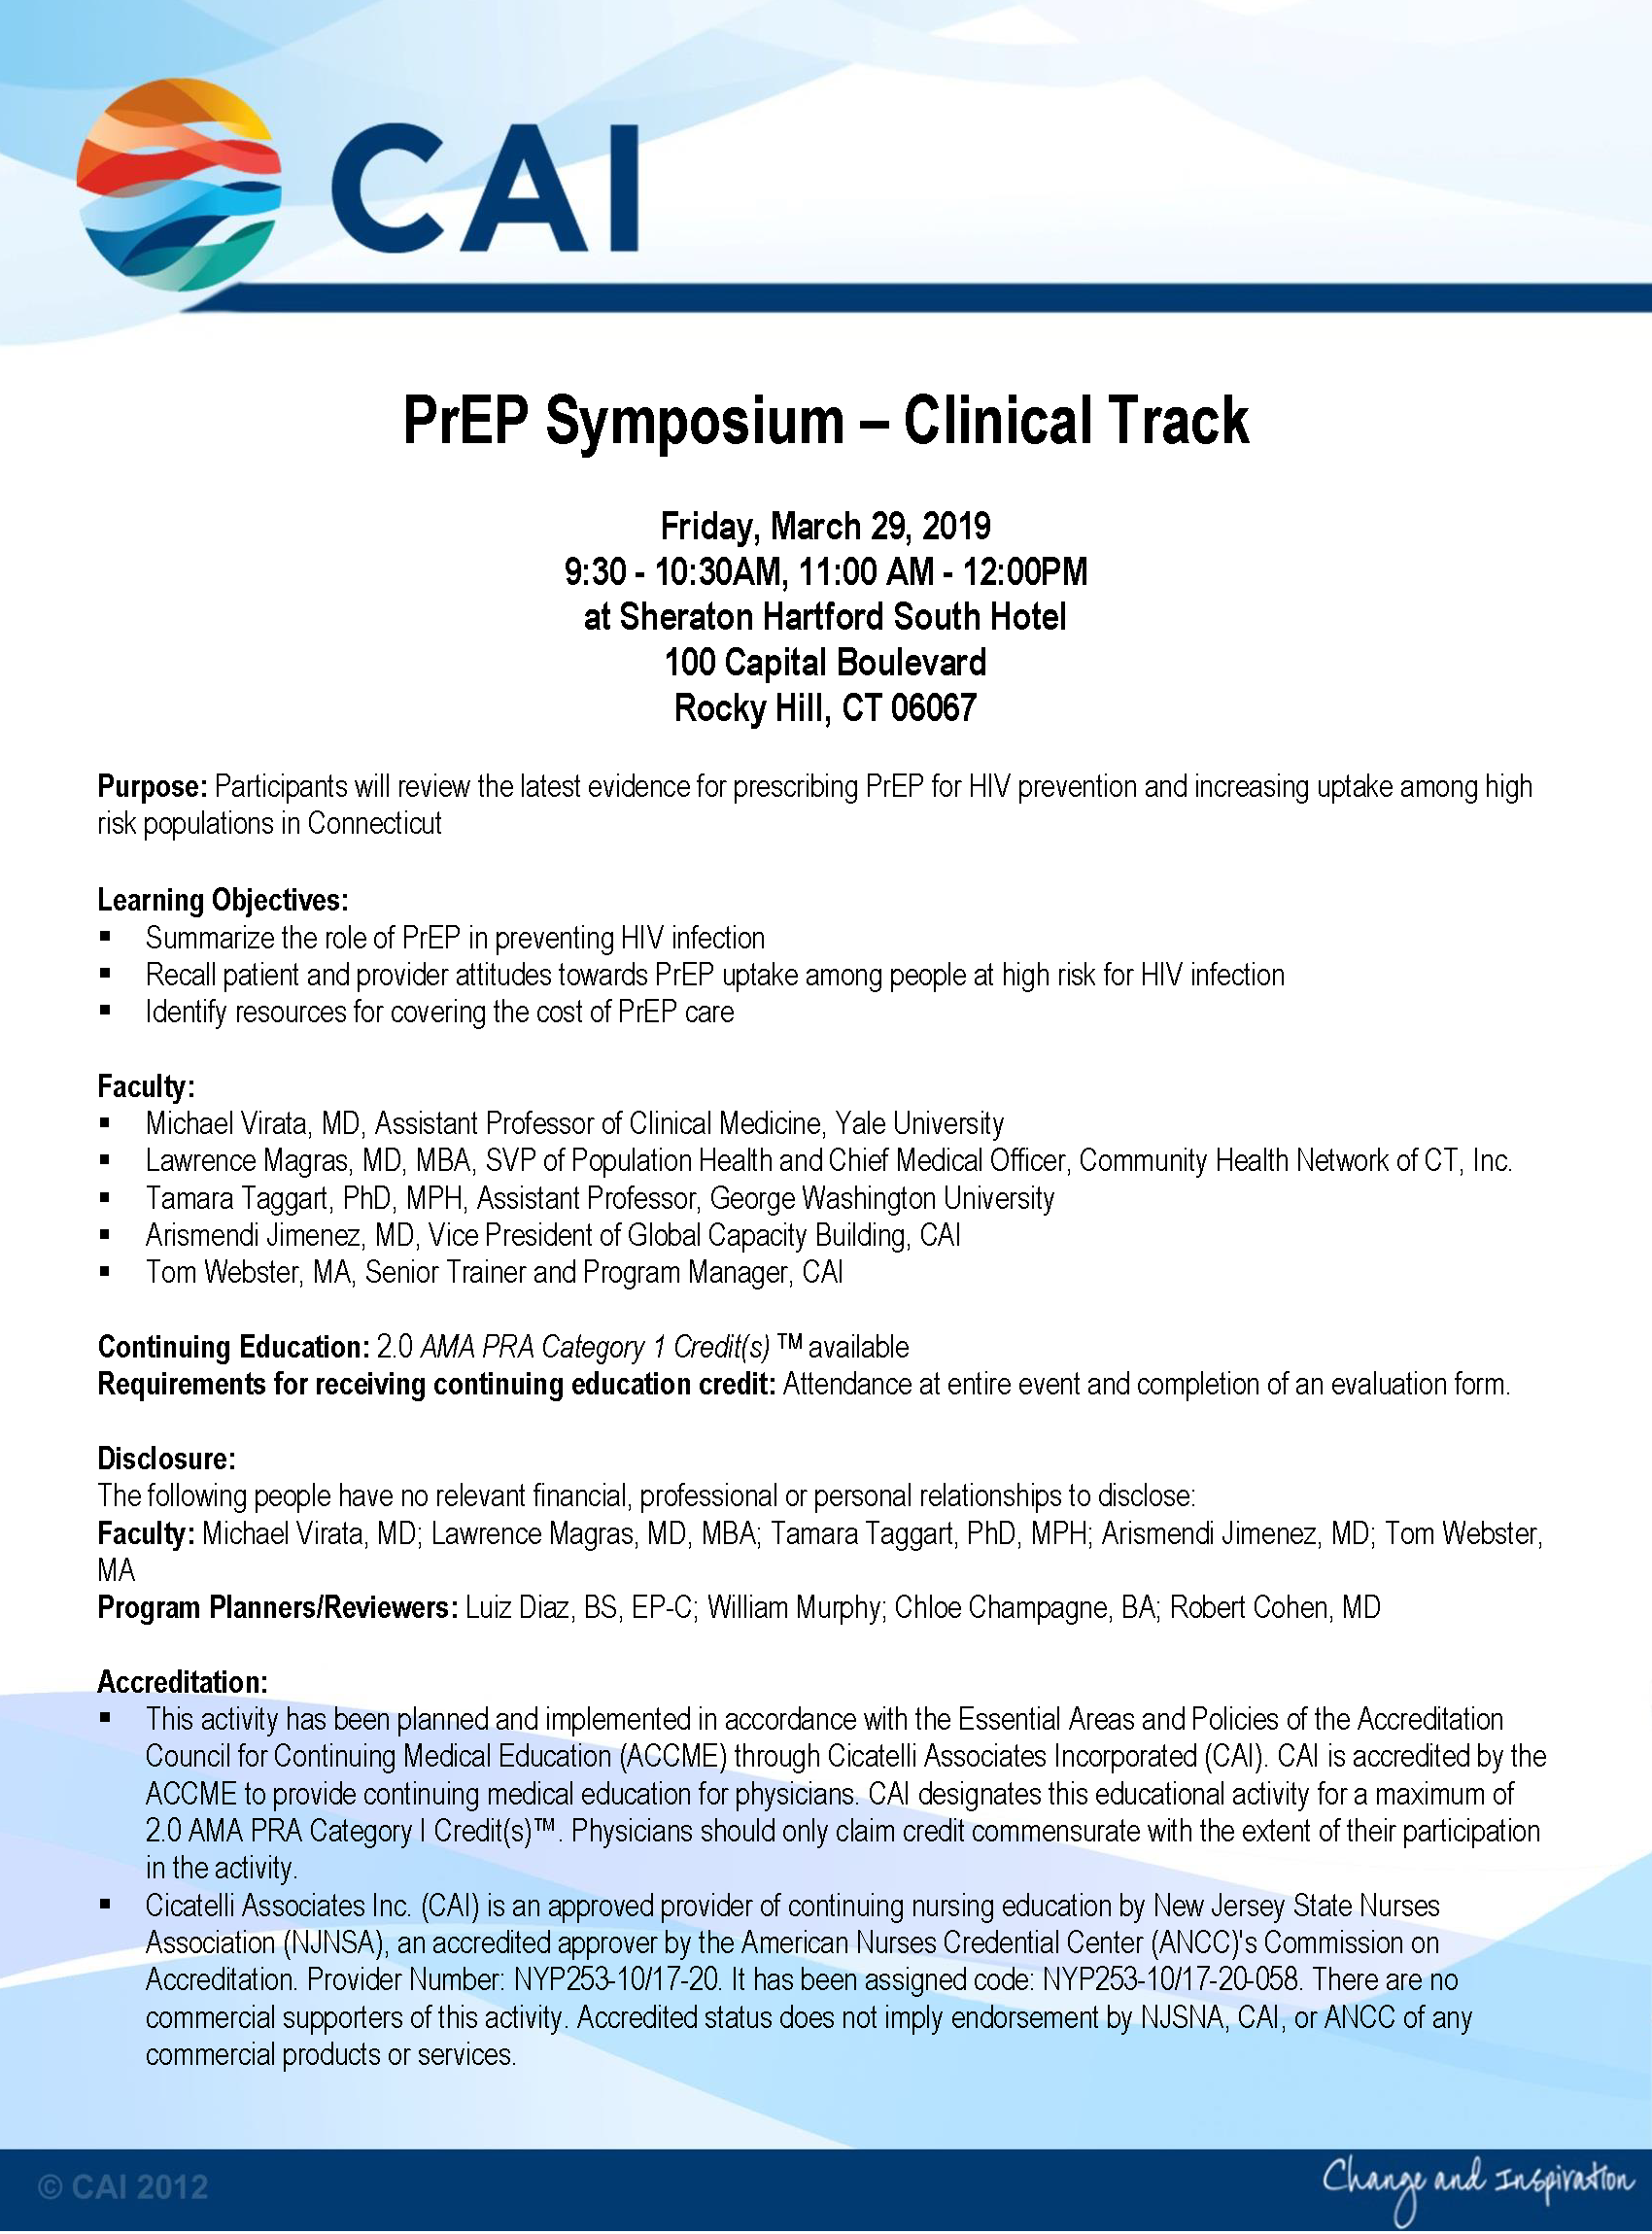 Connecticut Prep Symposium - Clinical Track - Community